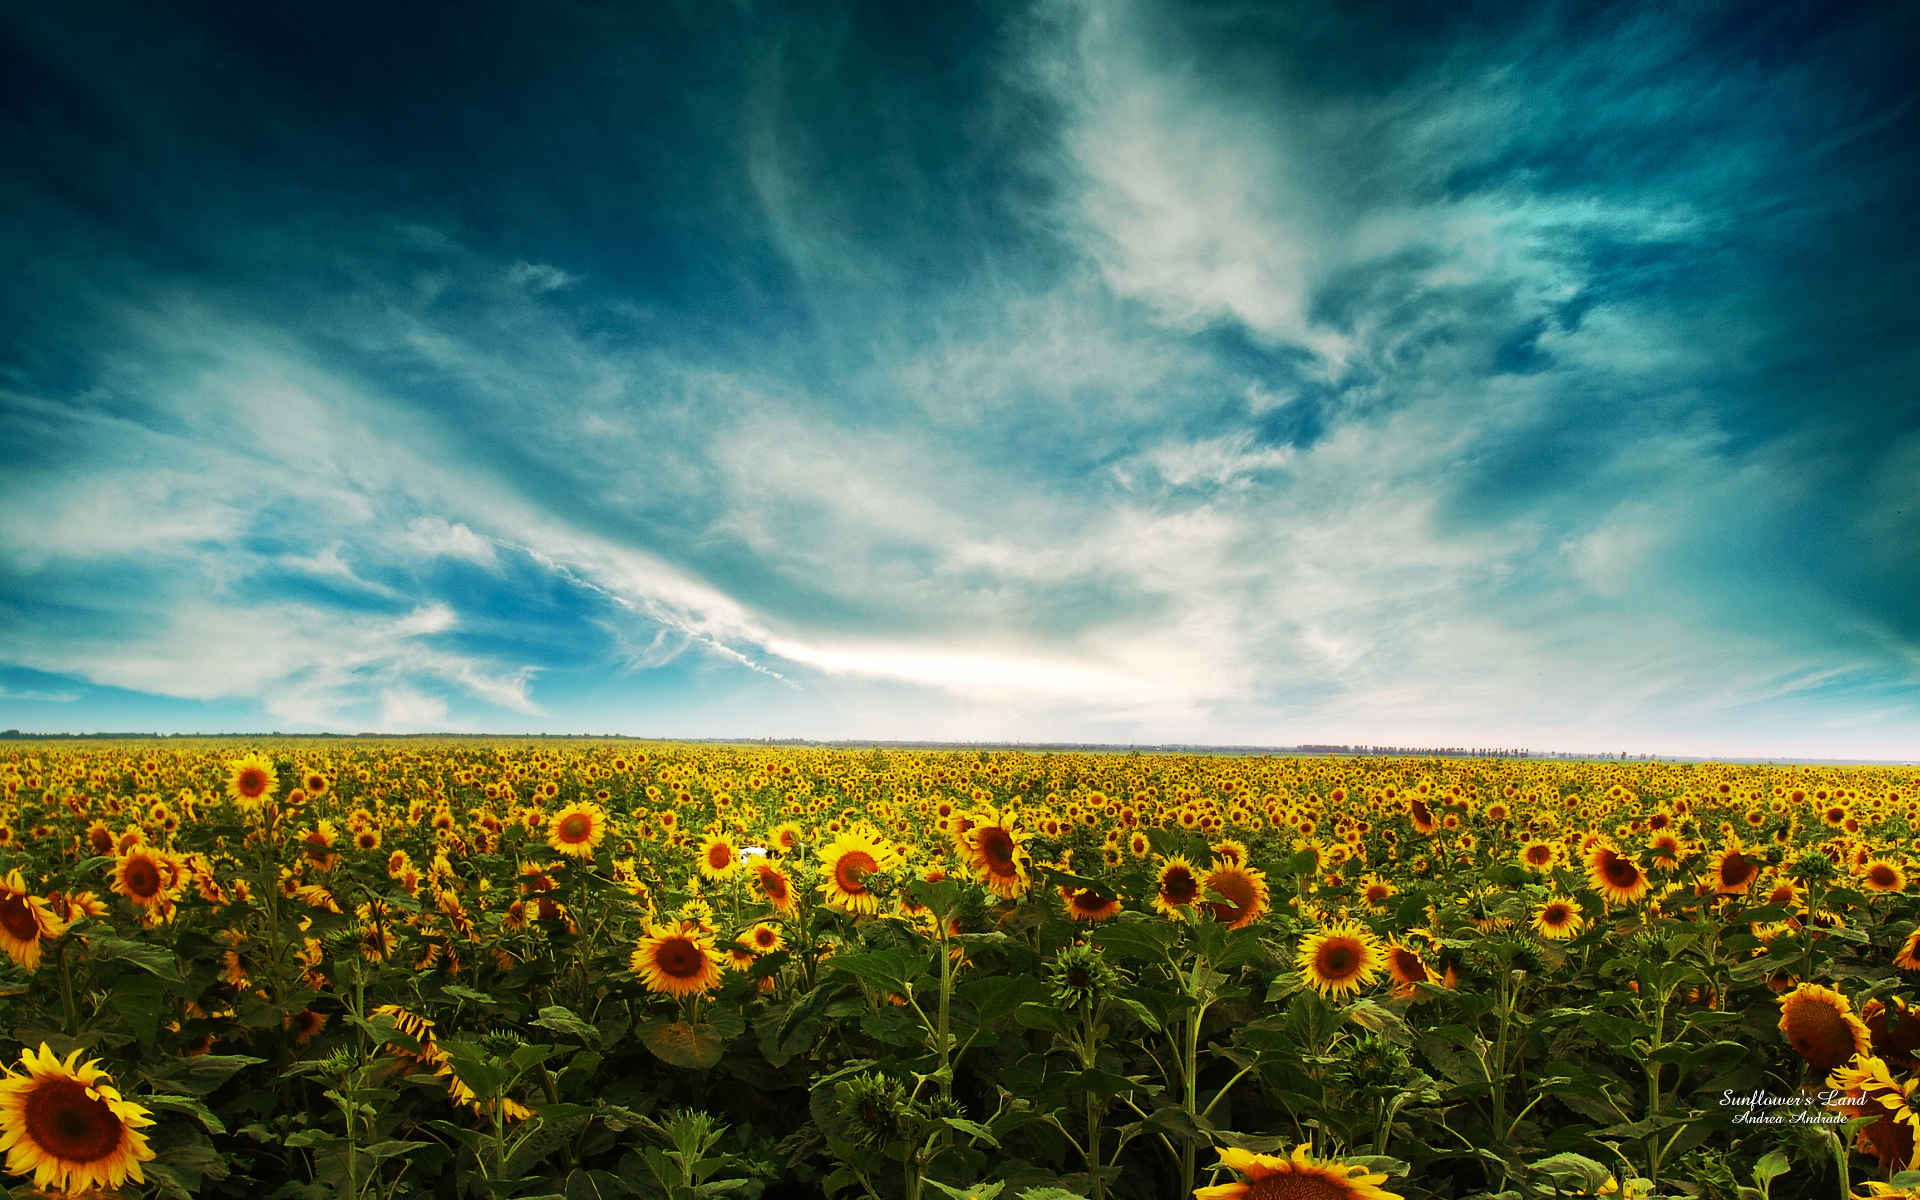 Sunflowers Landscape 852.02 Kb